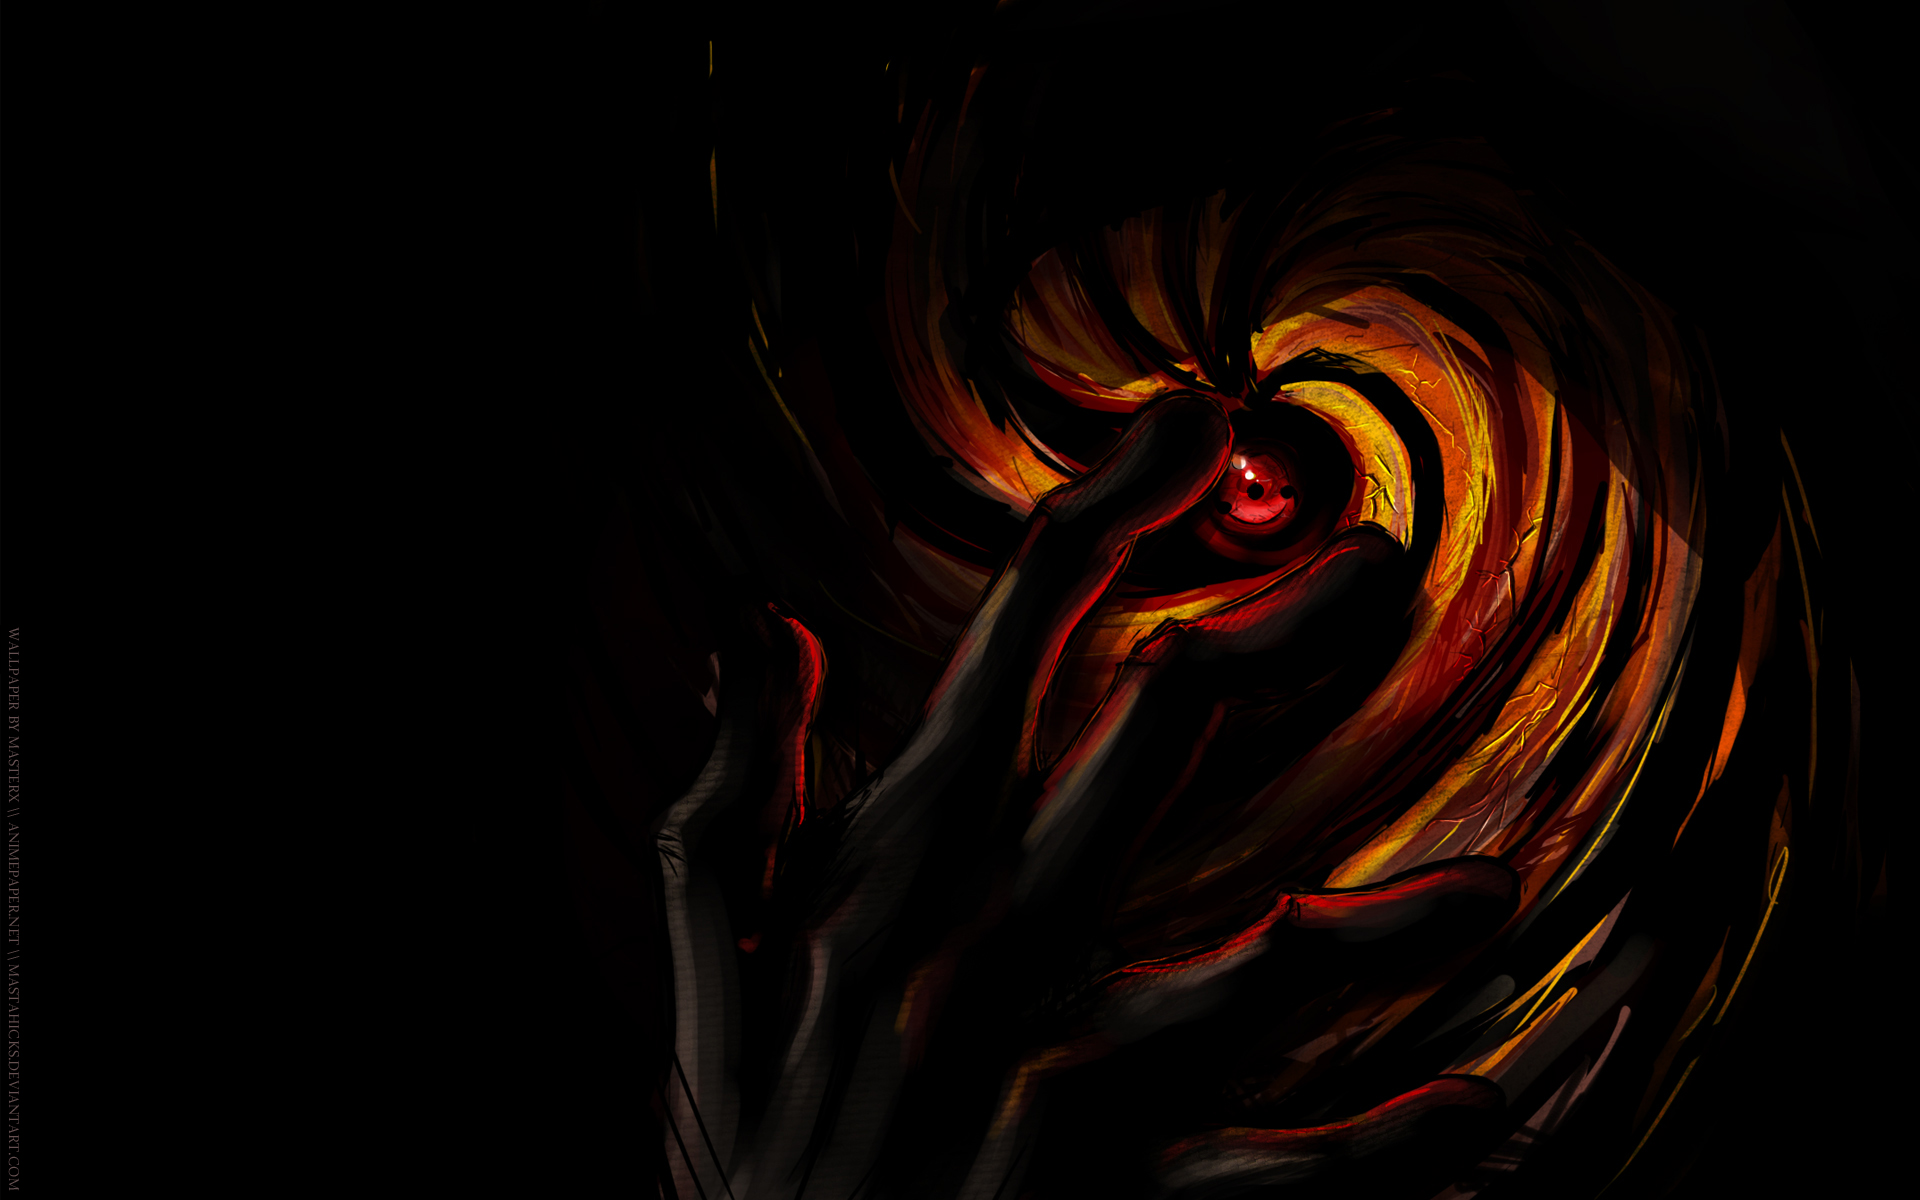 Dark anime wallpaper 1920x1200 59372 - Dark anime background ...